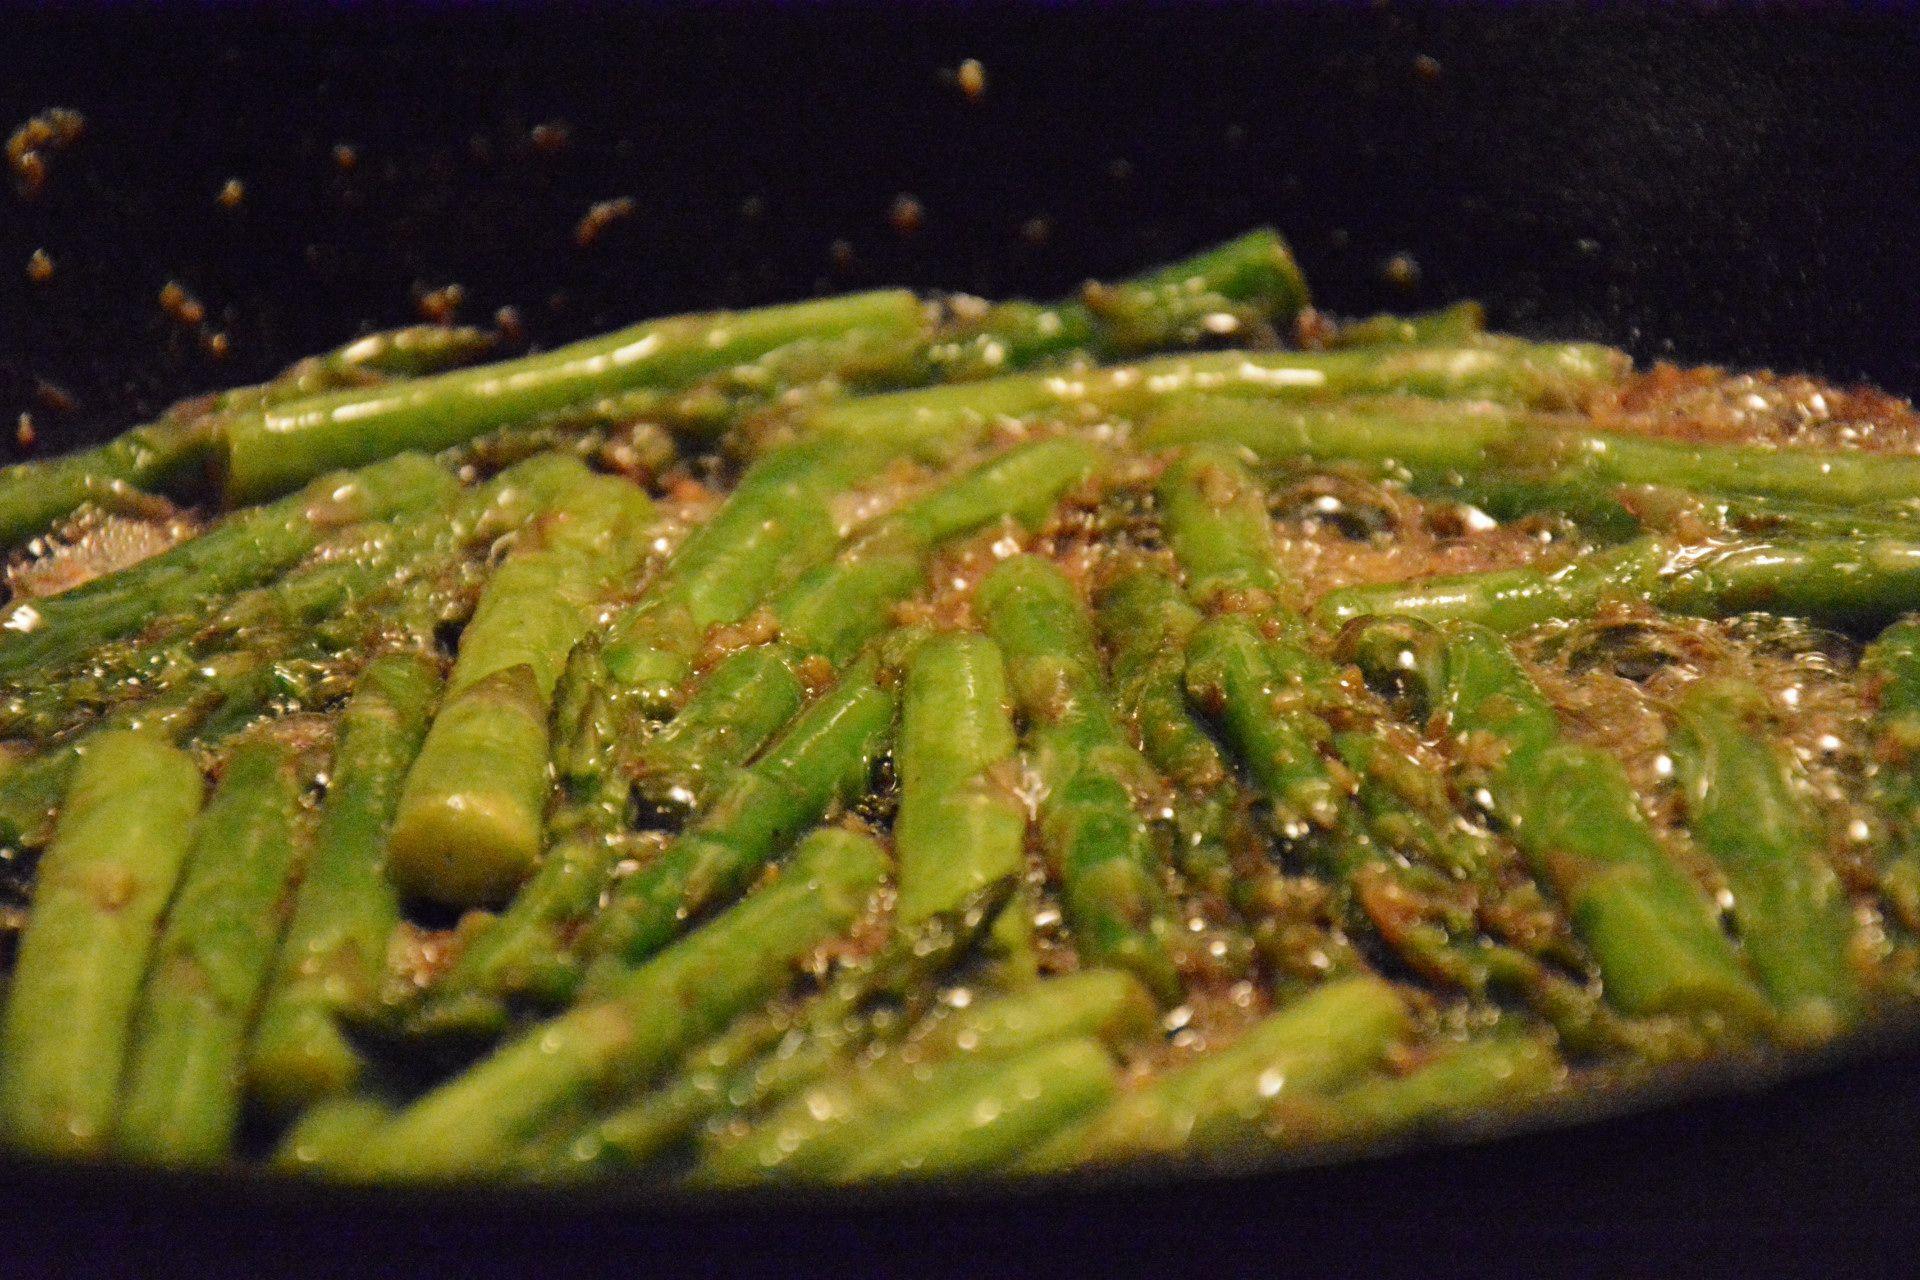 Garlic Asparagus - Simple recipe with blanched asparagus finished with garlic and butter.